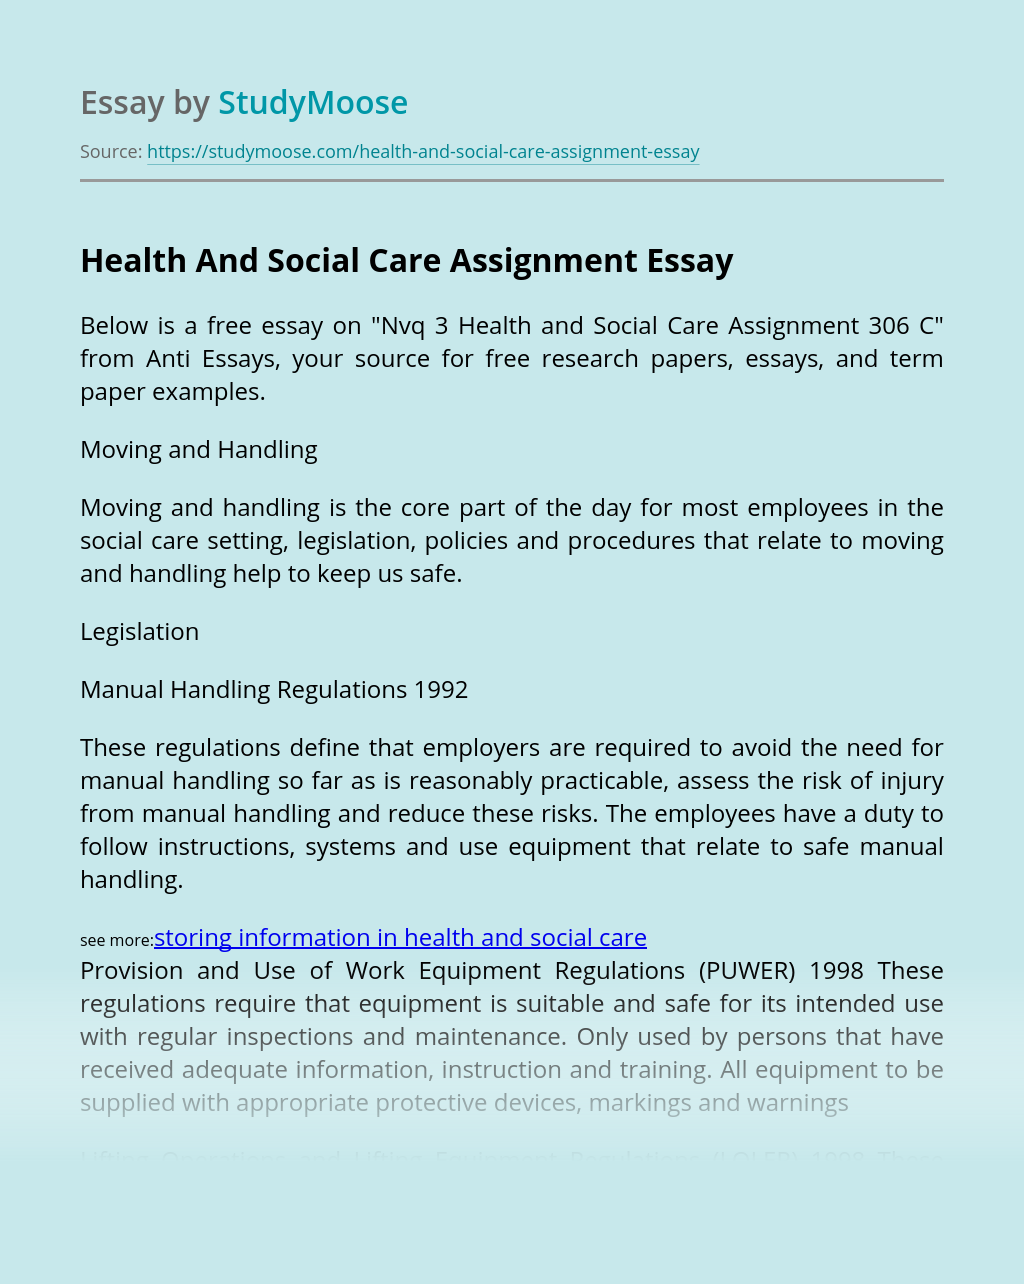 Health And Social Care Assignment